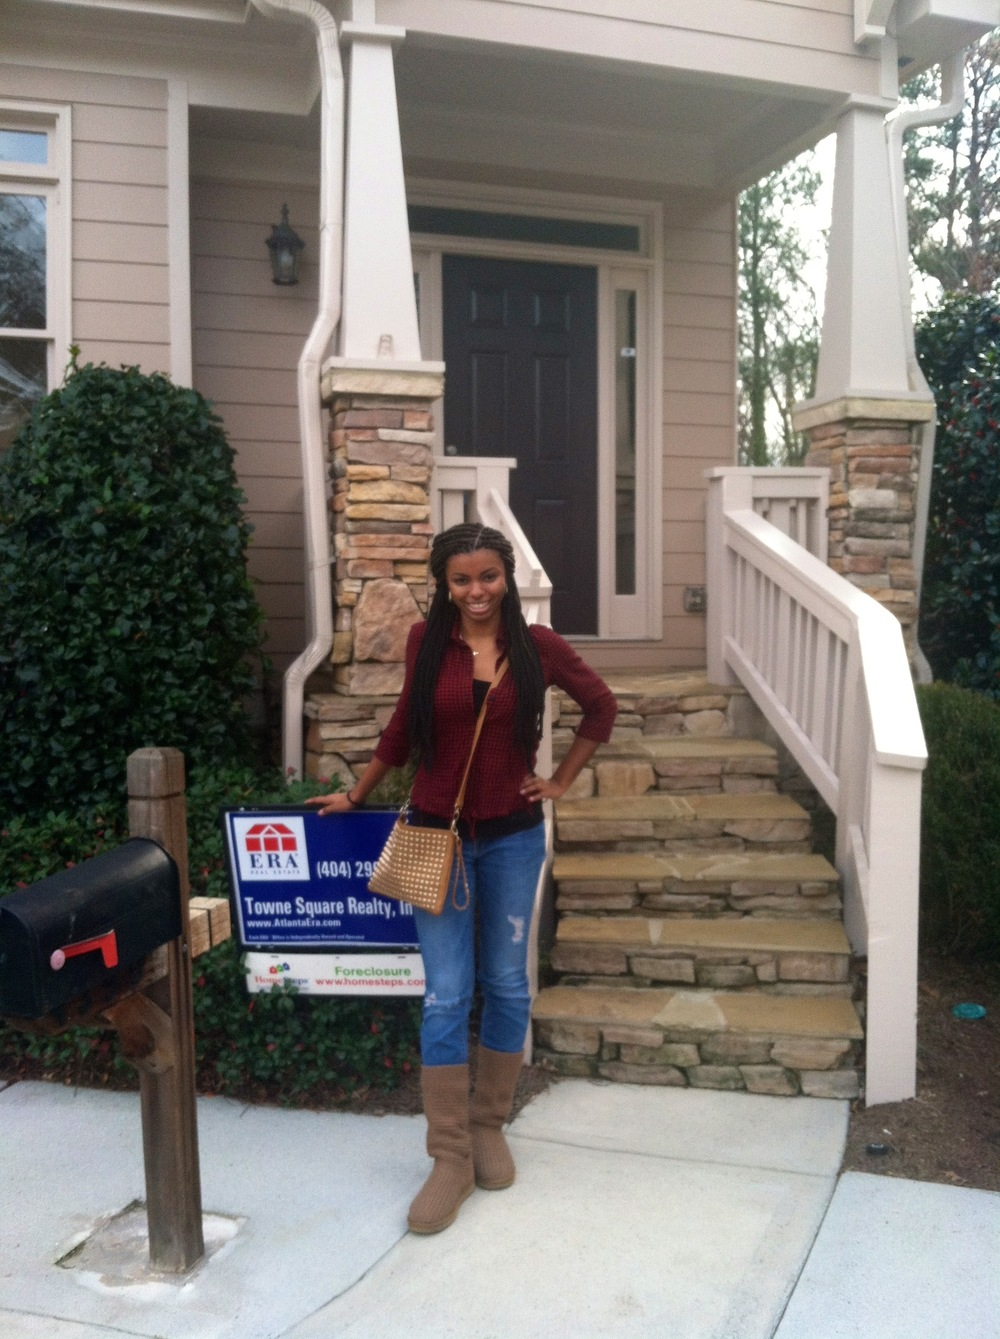 12.21.12, officially a first-time homebuyer!